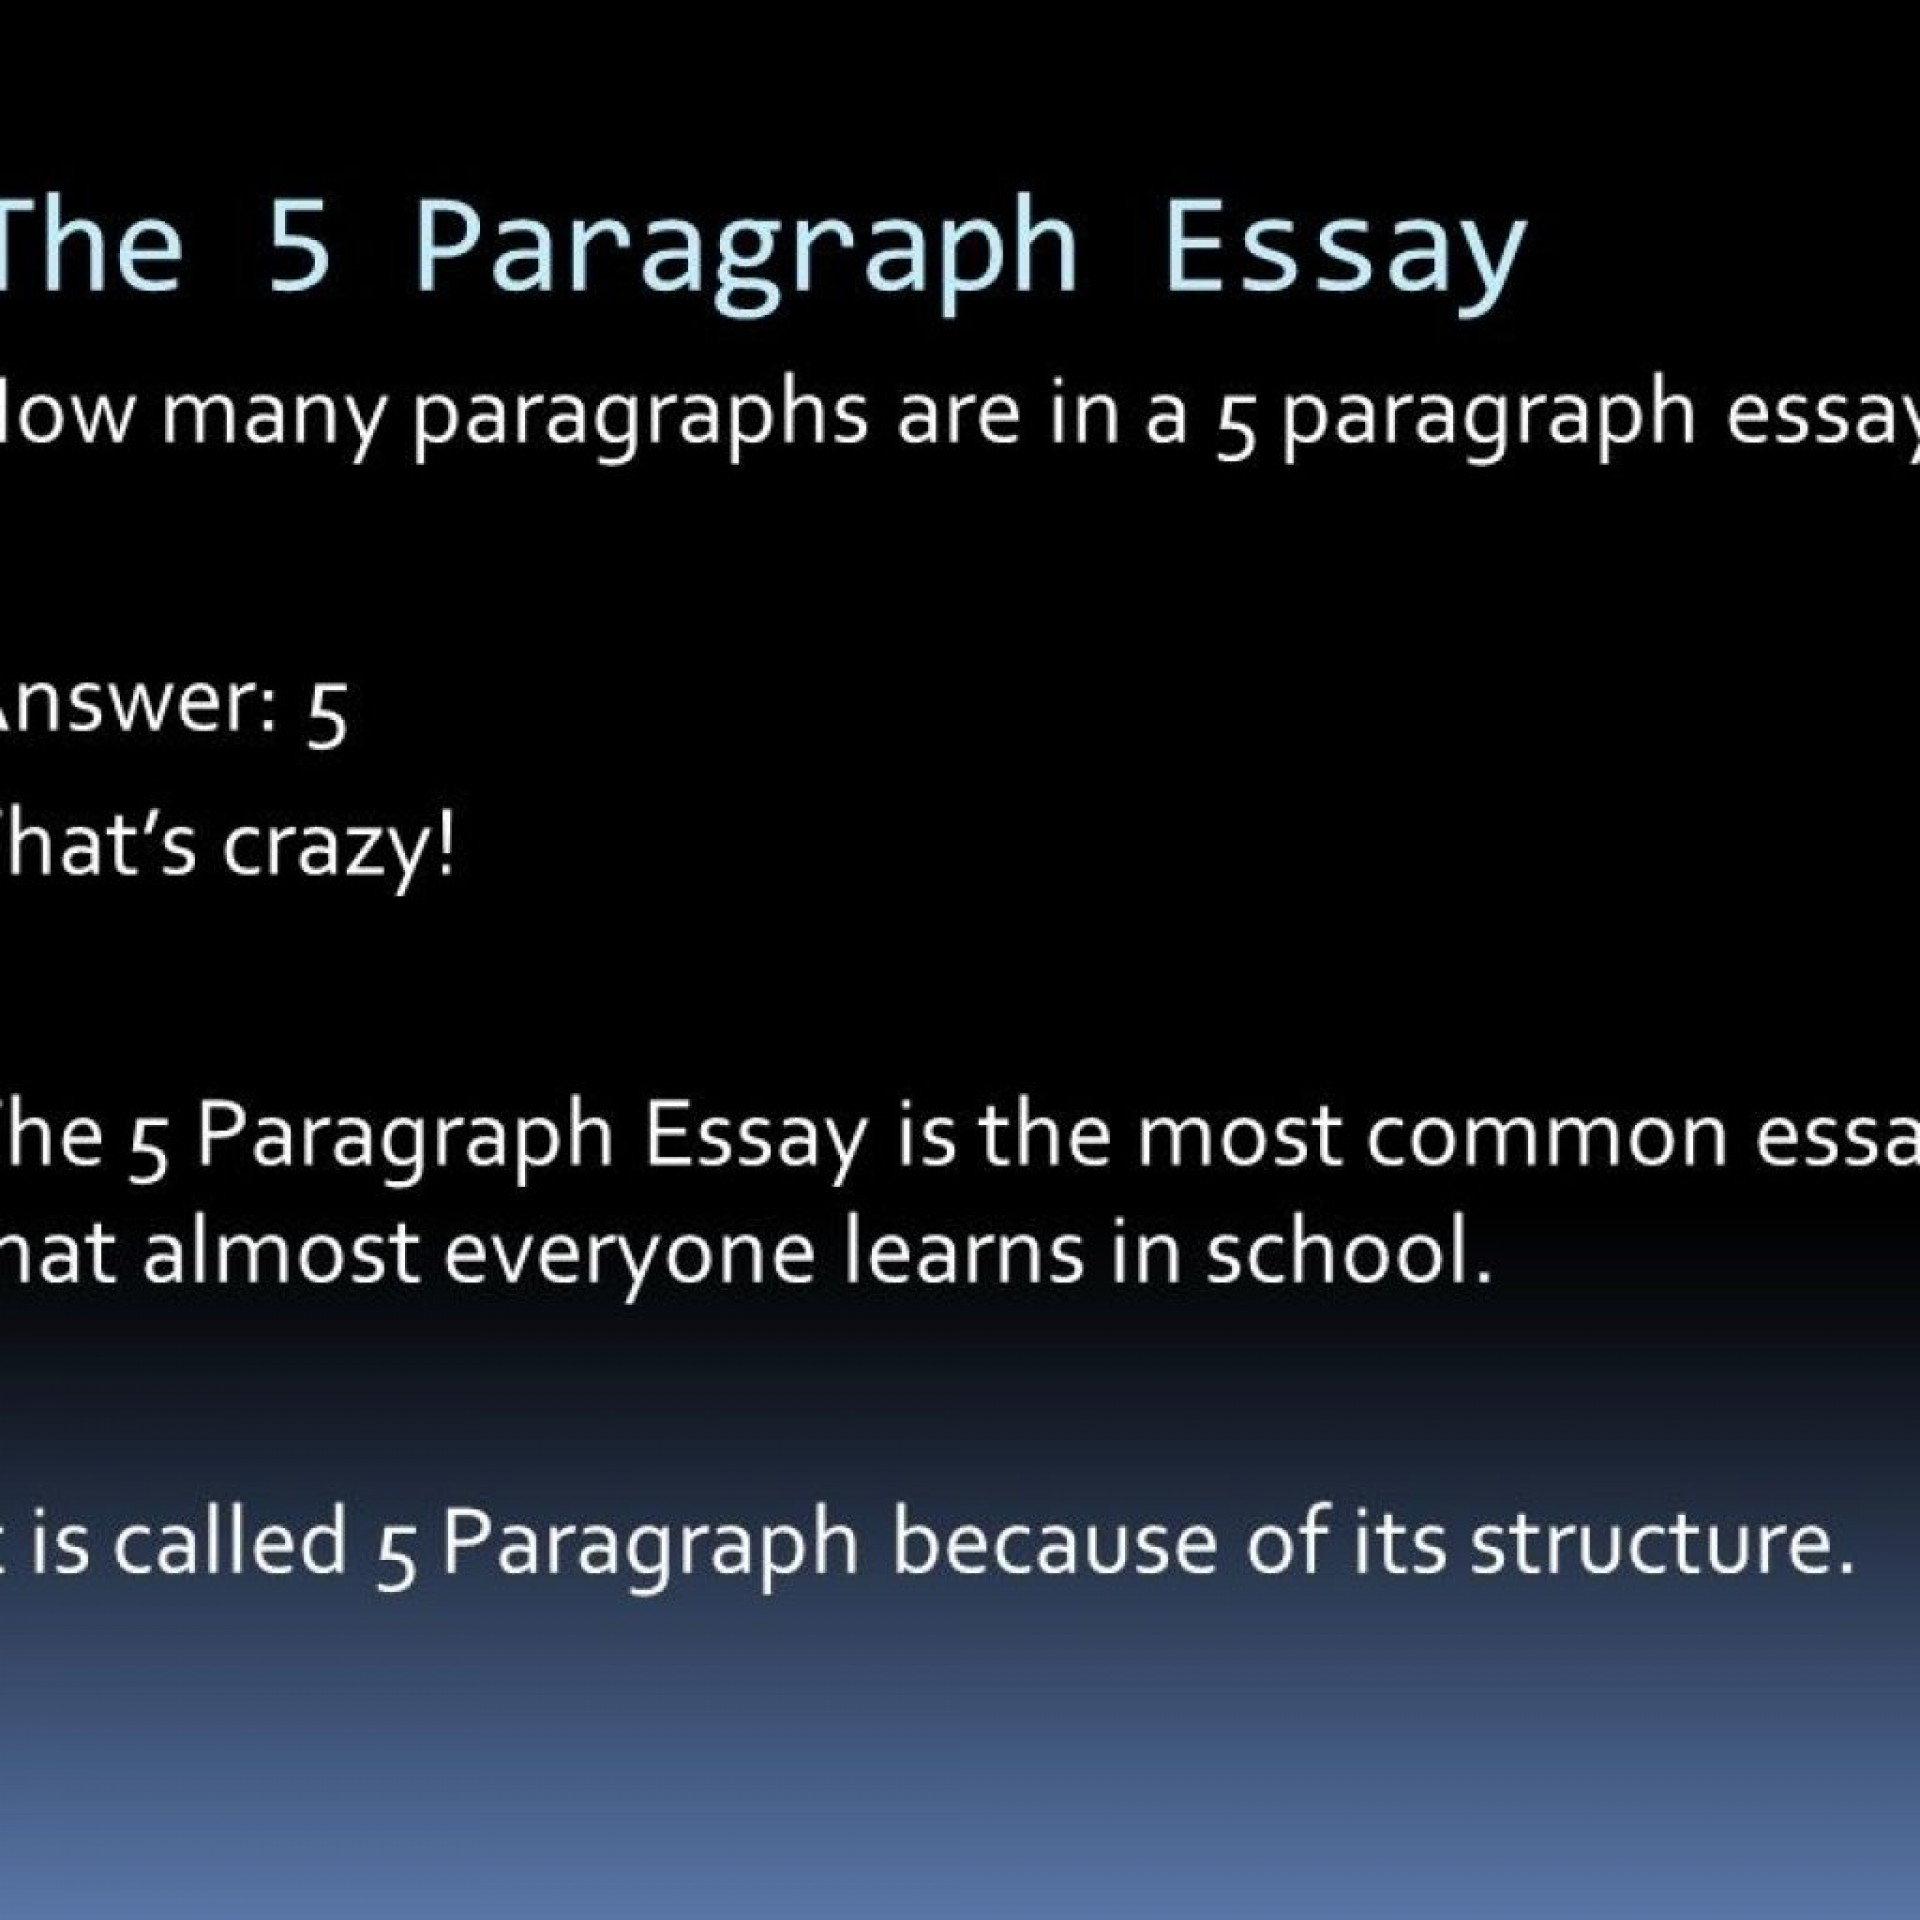 002 How Many Sentences Are In Paragraph For An Essay 2867177336 Is Wondrous A College Should Be Of Each 1920